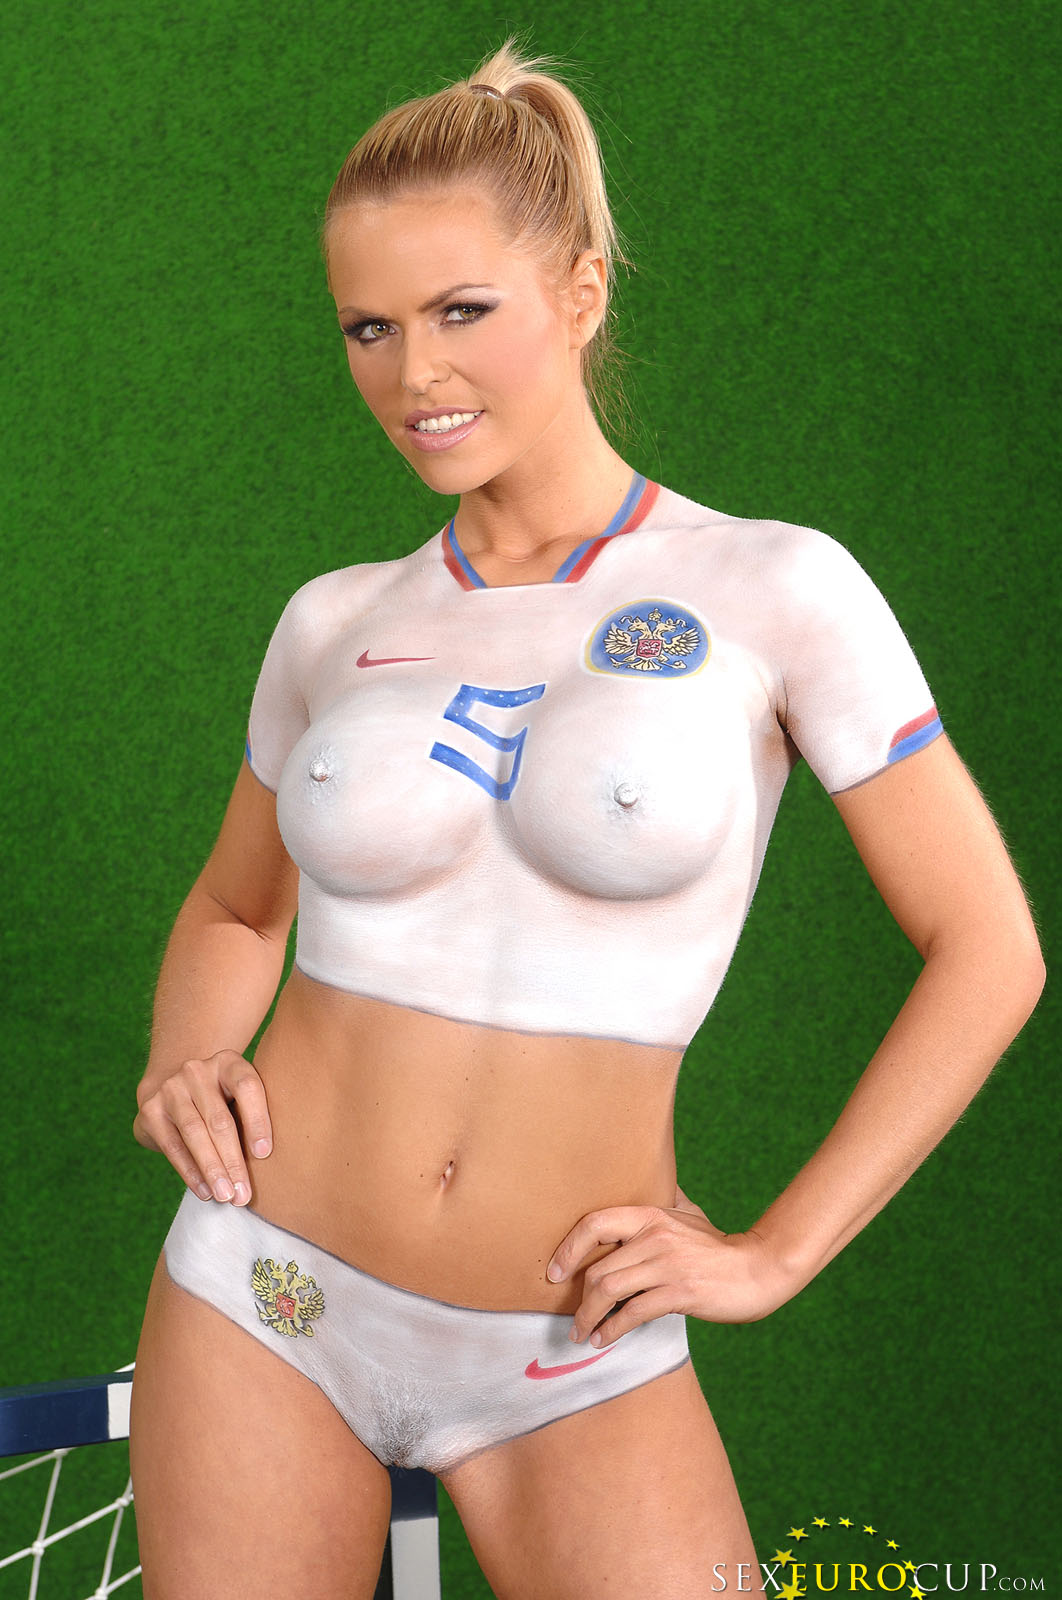 pretty faced smiling babes with perfect bodies pose in painted soccer